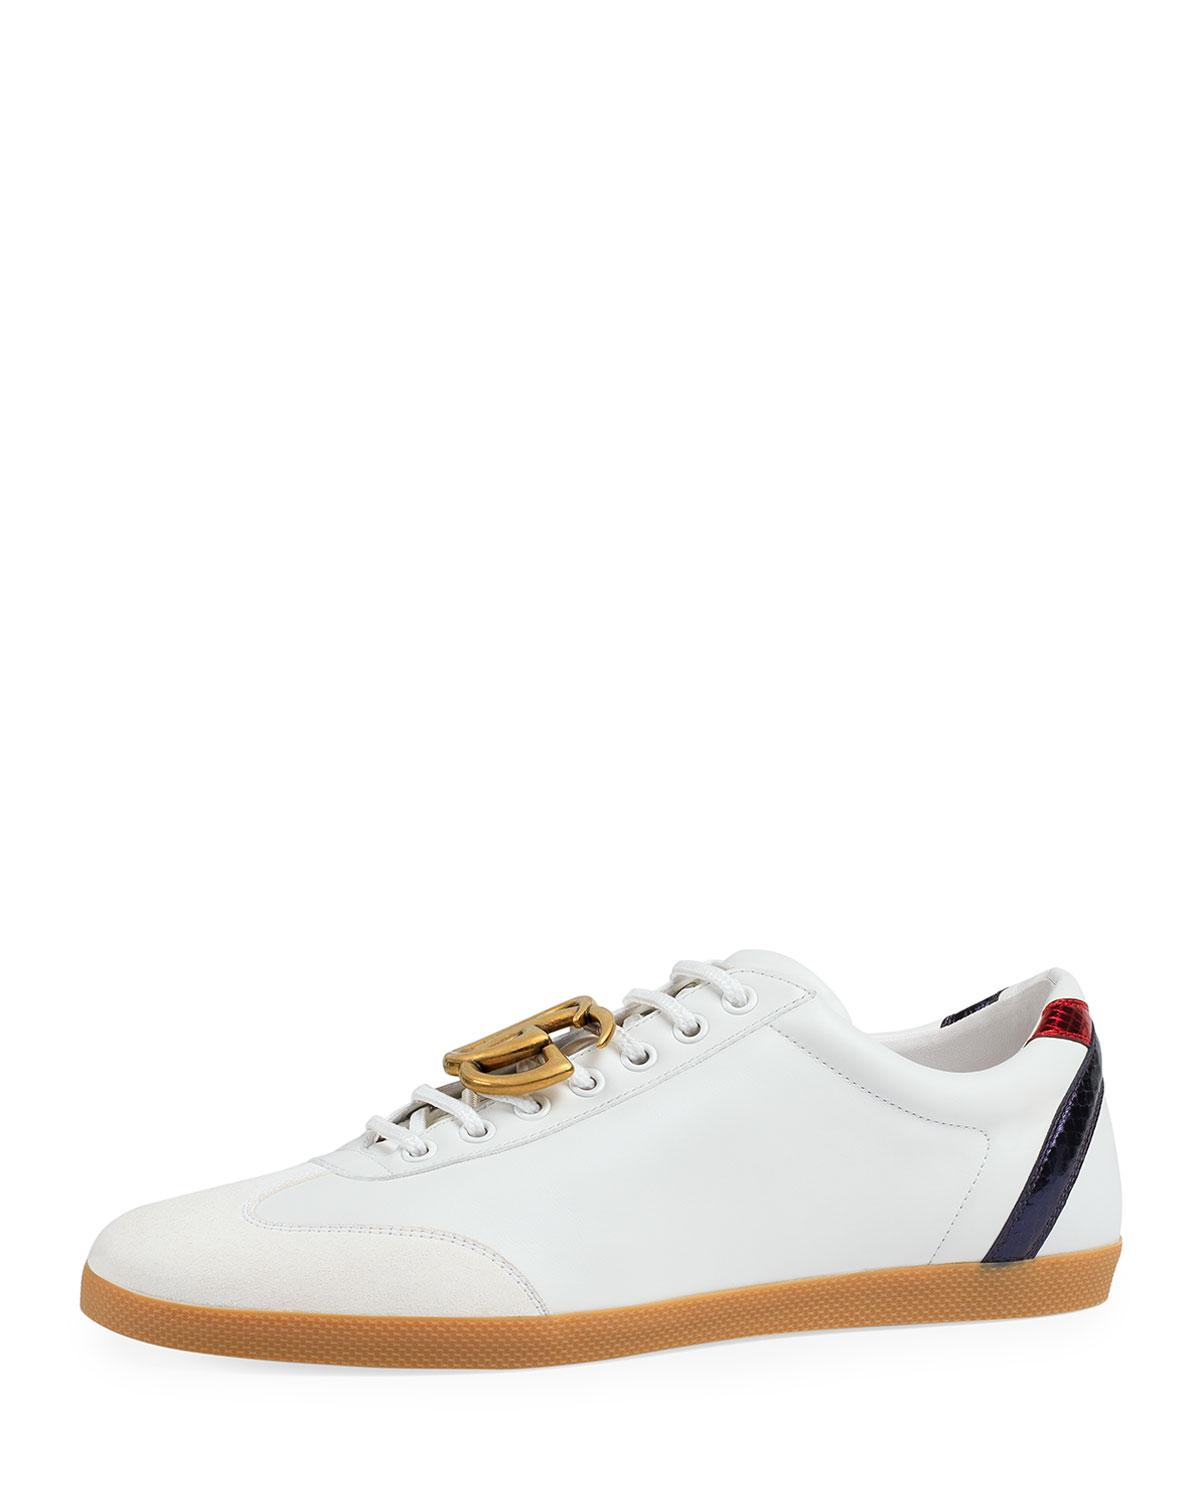 a92d648abd4 Lyst - Gucci Bambi Gg Leather Low-top Sneaker in White for Men